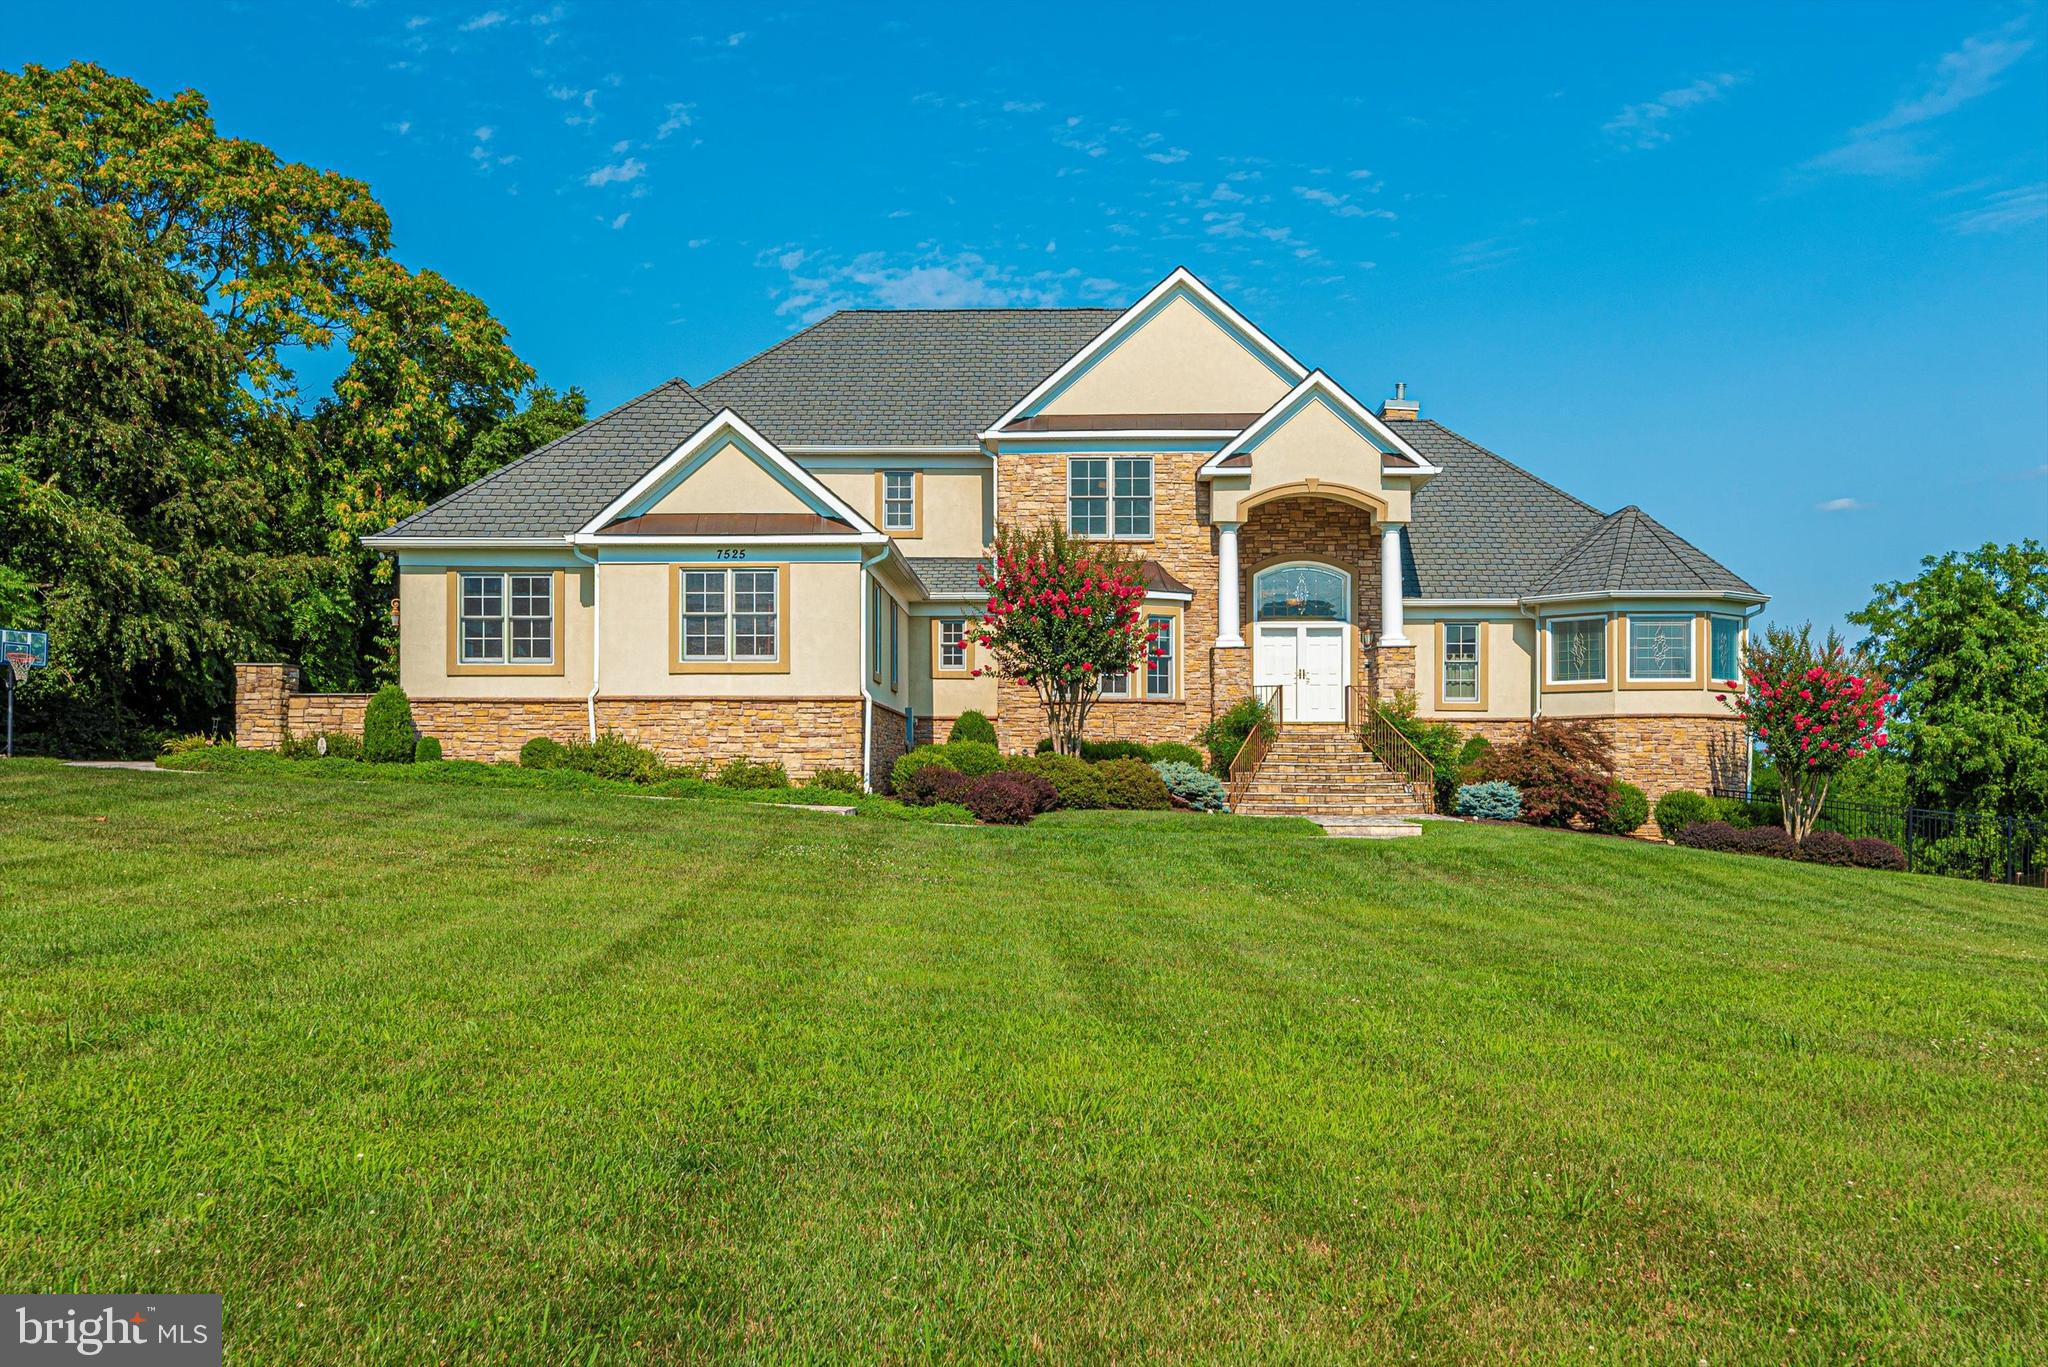 You'll have it all with this stunning, 6 Bedroom, 6 Bath, 3 Finished Level, Custom Built Home situat